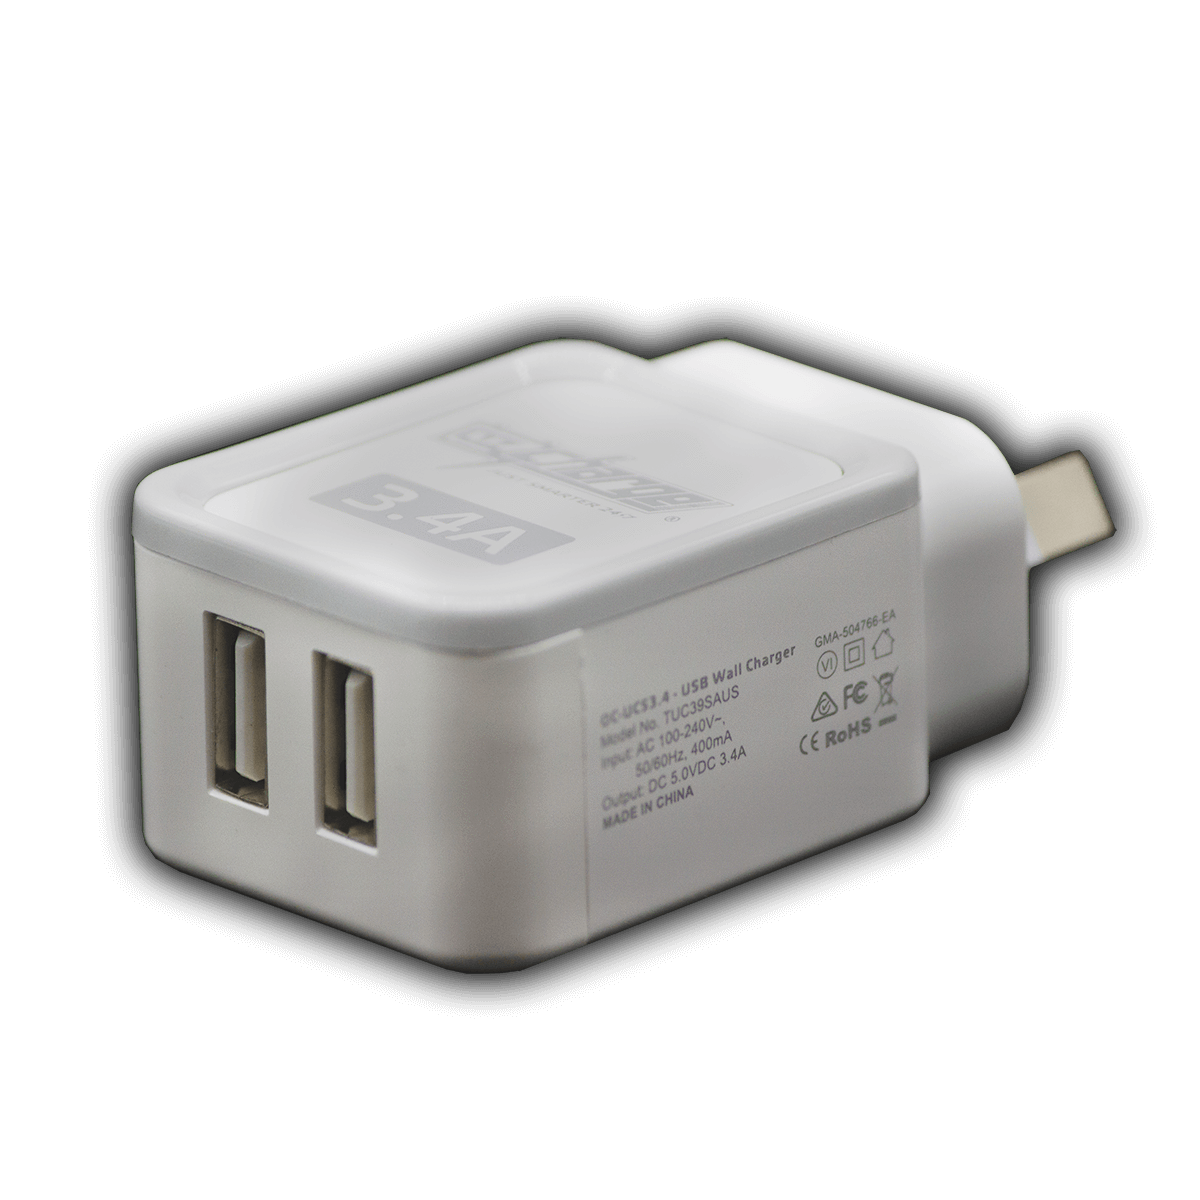 OC-UC53.4 3.4A Dual USB Port Mains Wall Charger